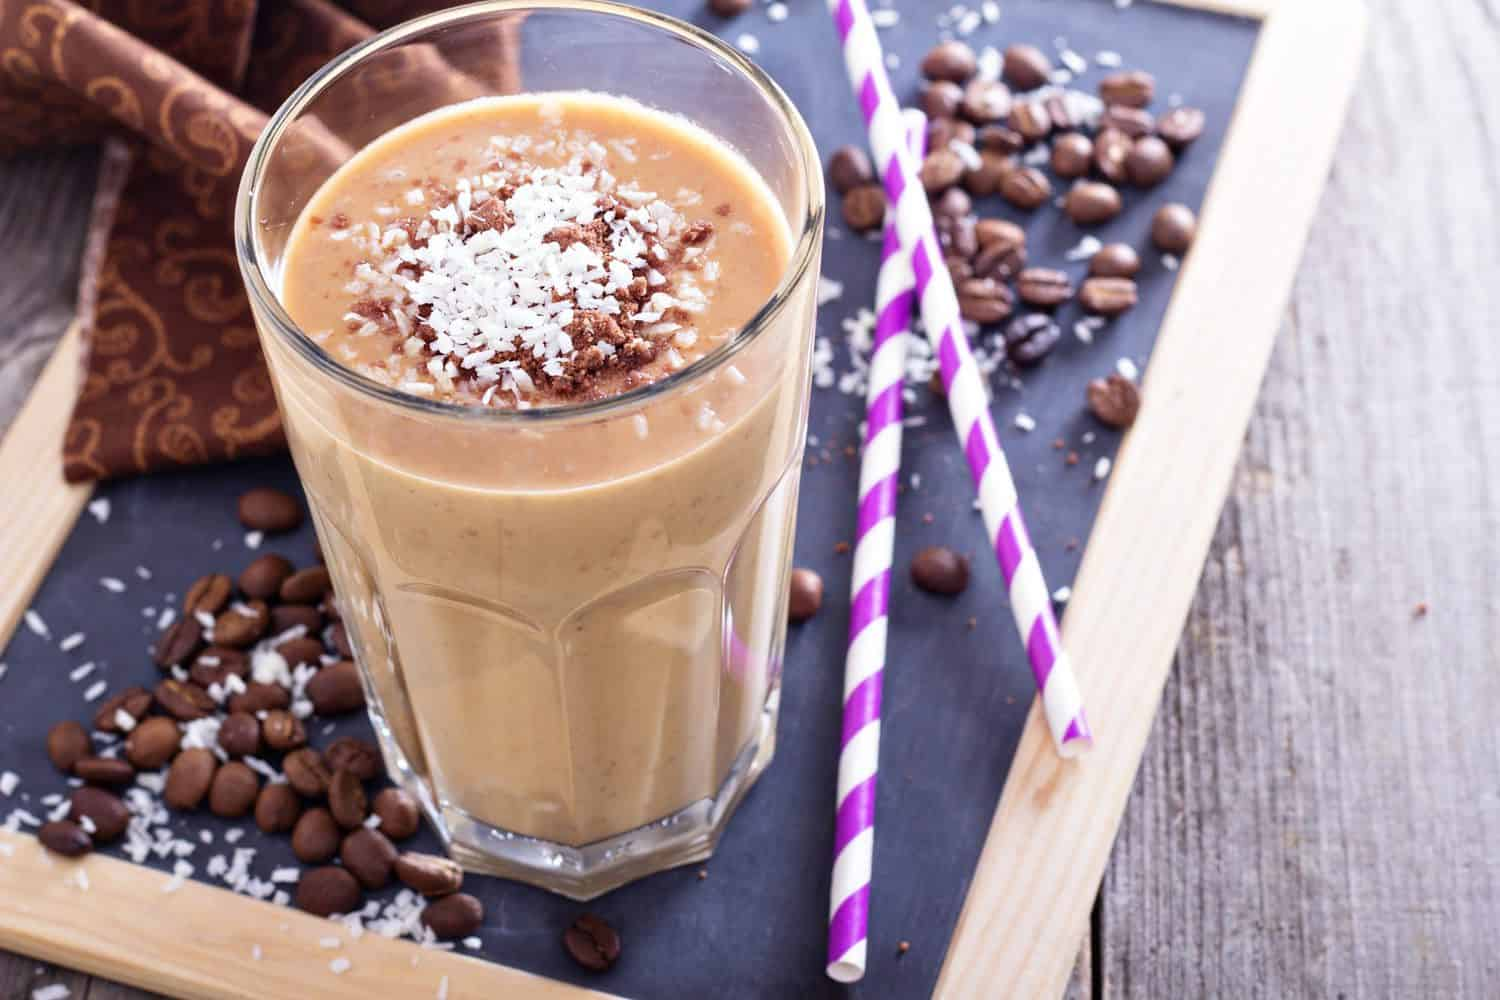 A coffee-based smoothie.